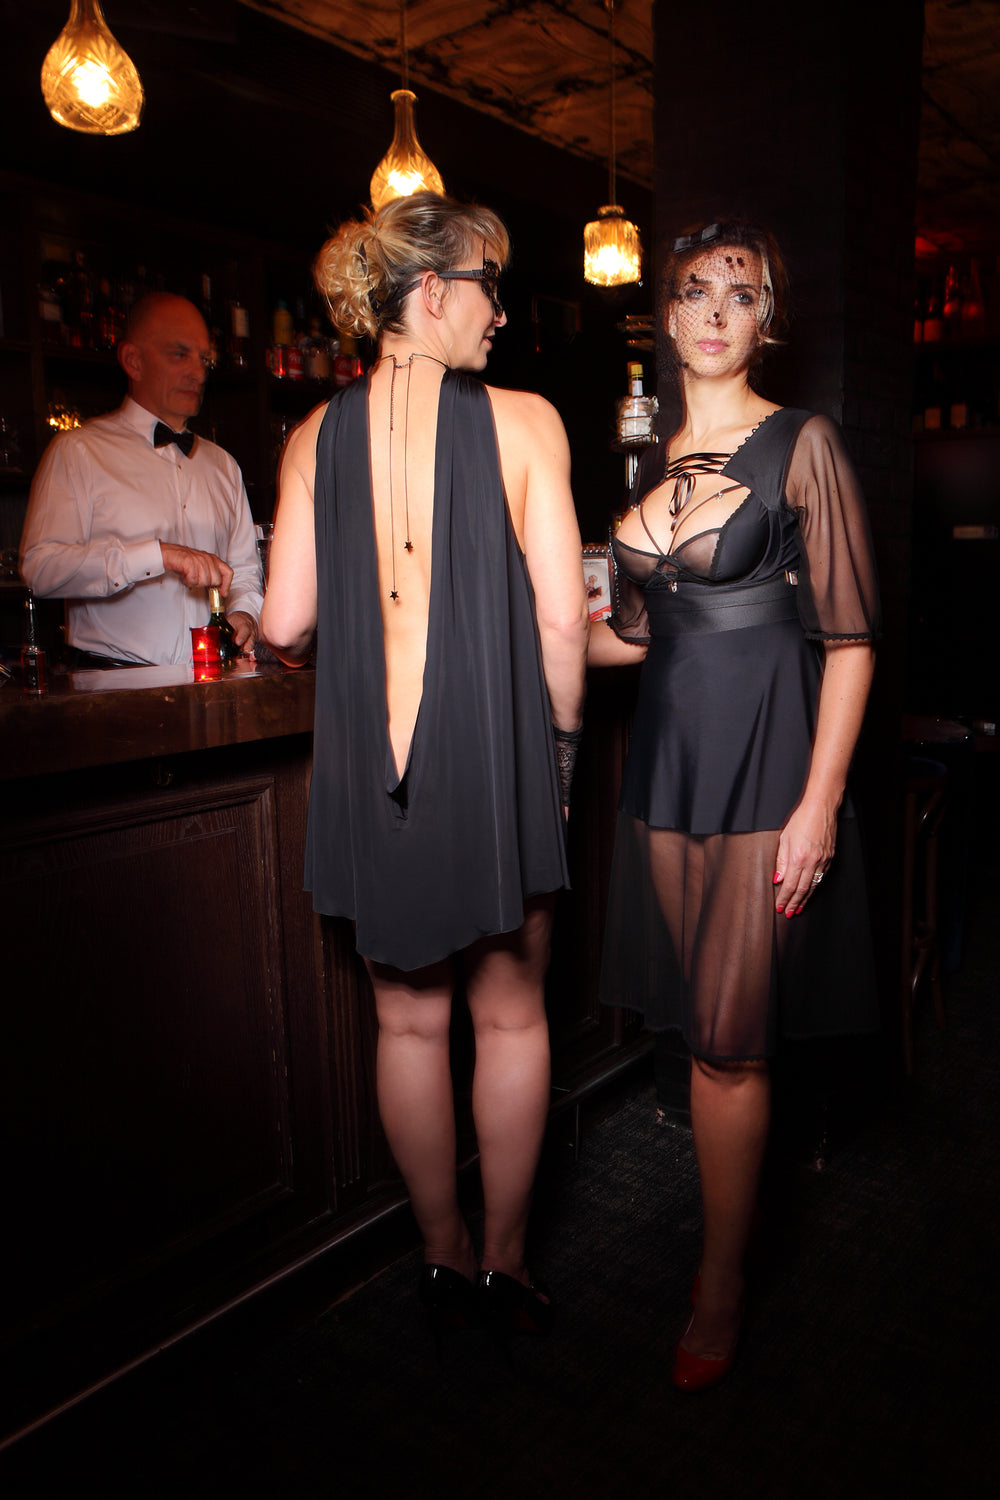 frisson-coupable-robe-sexy-chic-grande-taille-glamour-club-noir